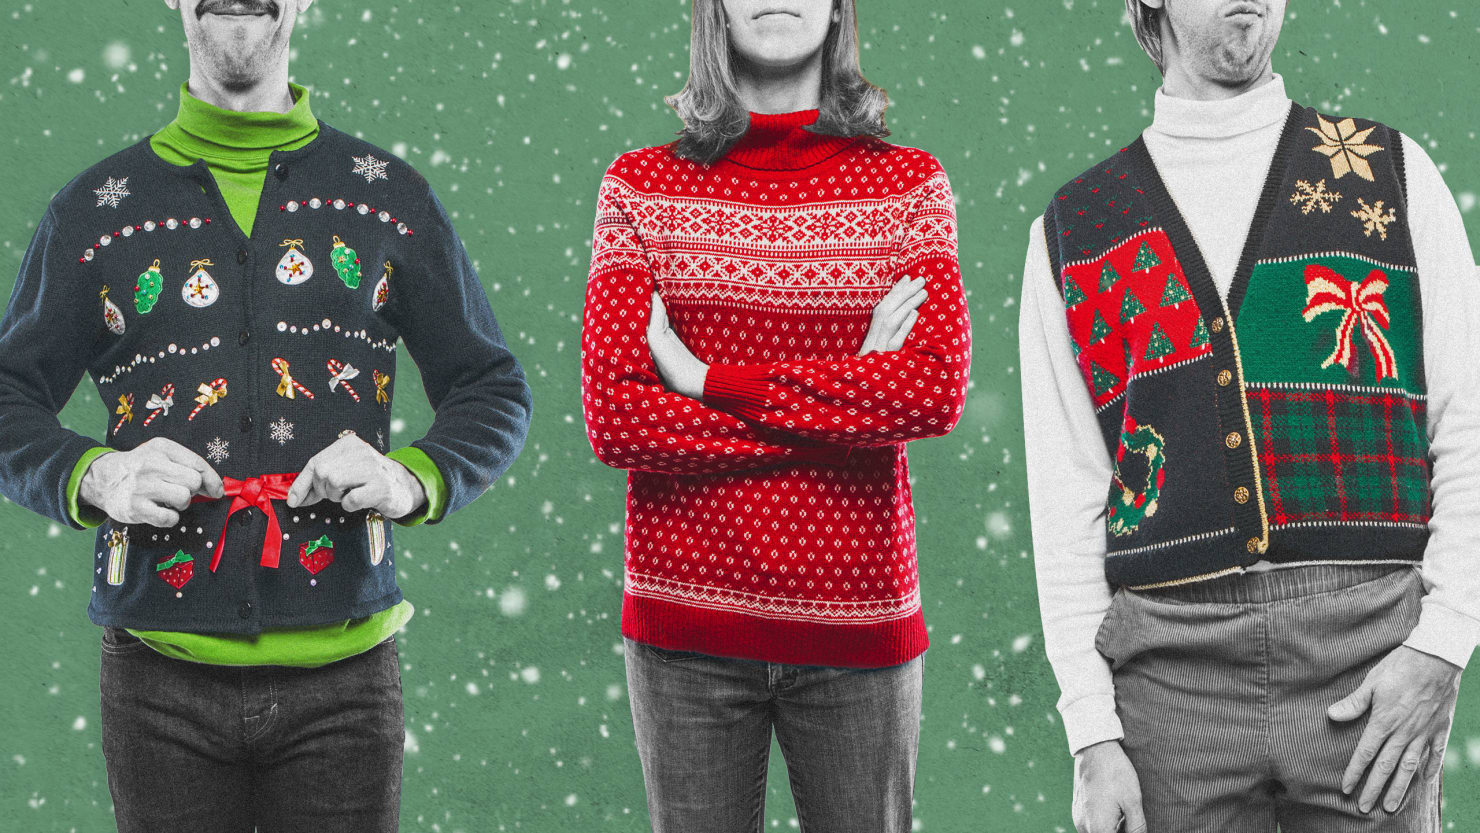 How The 'Ugly Christmas Sweater' Conquered America